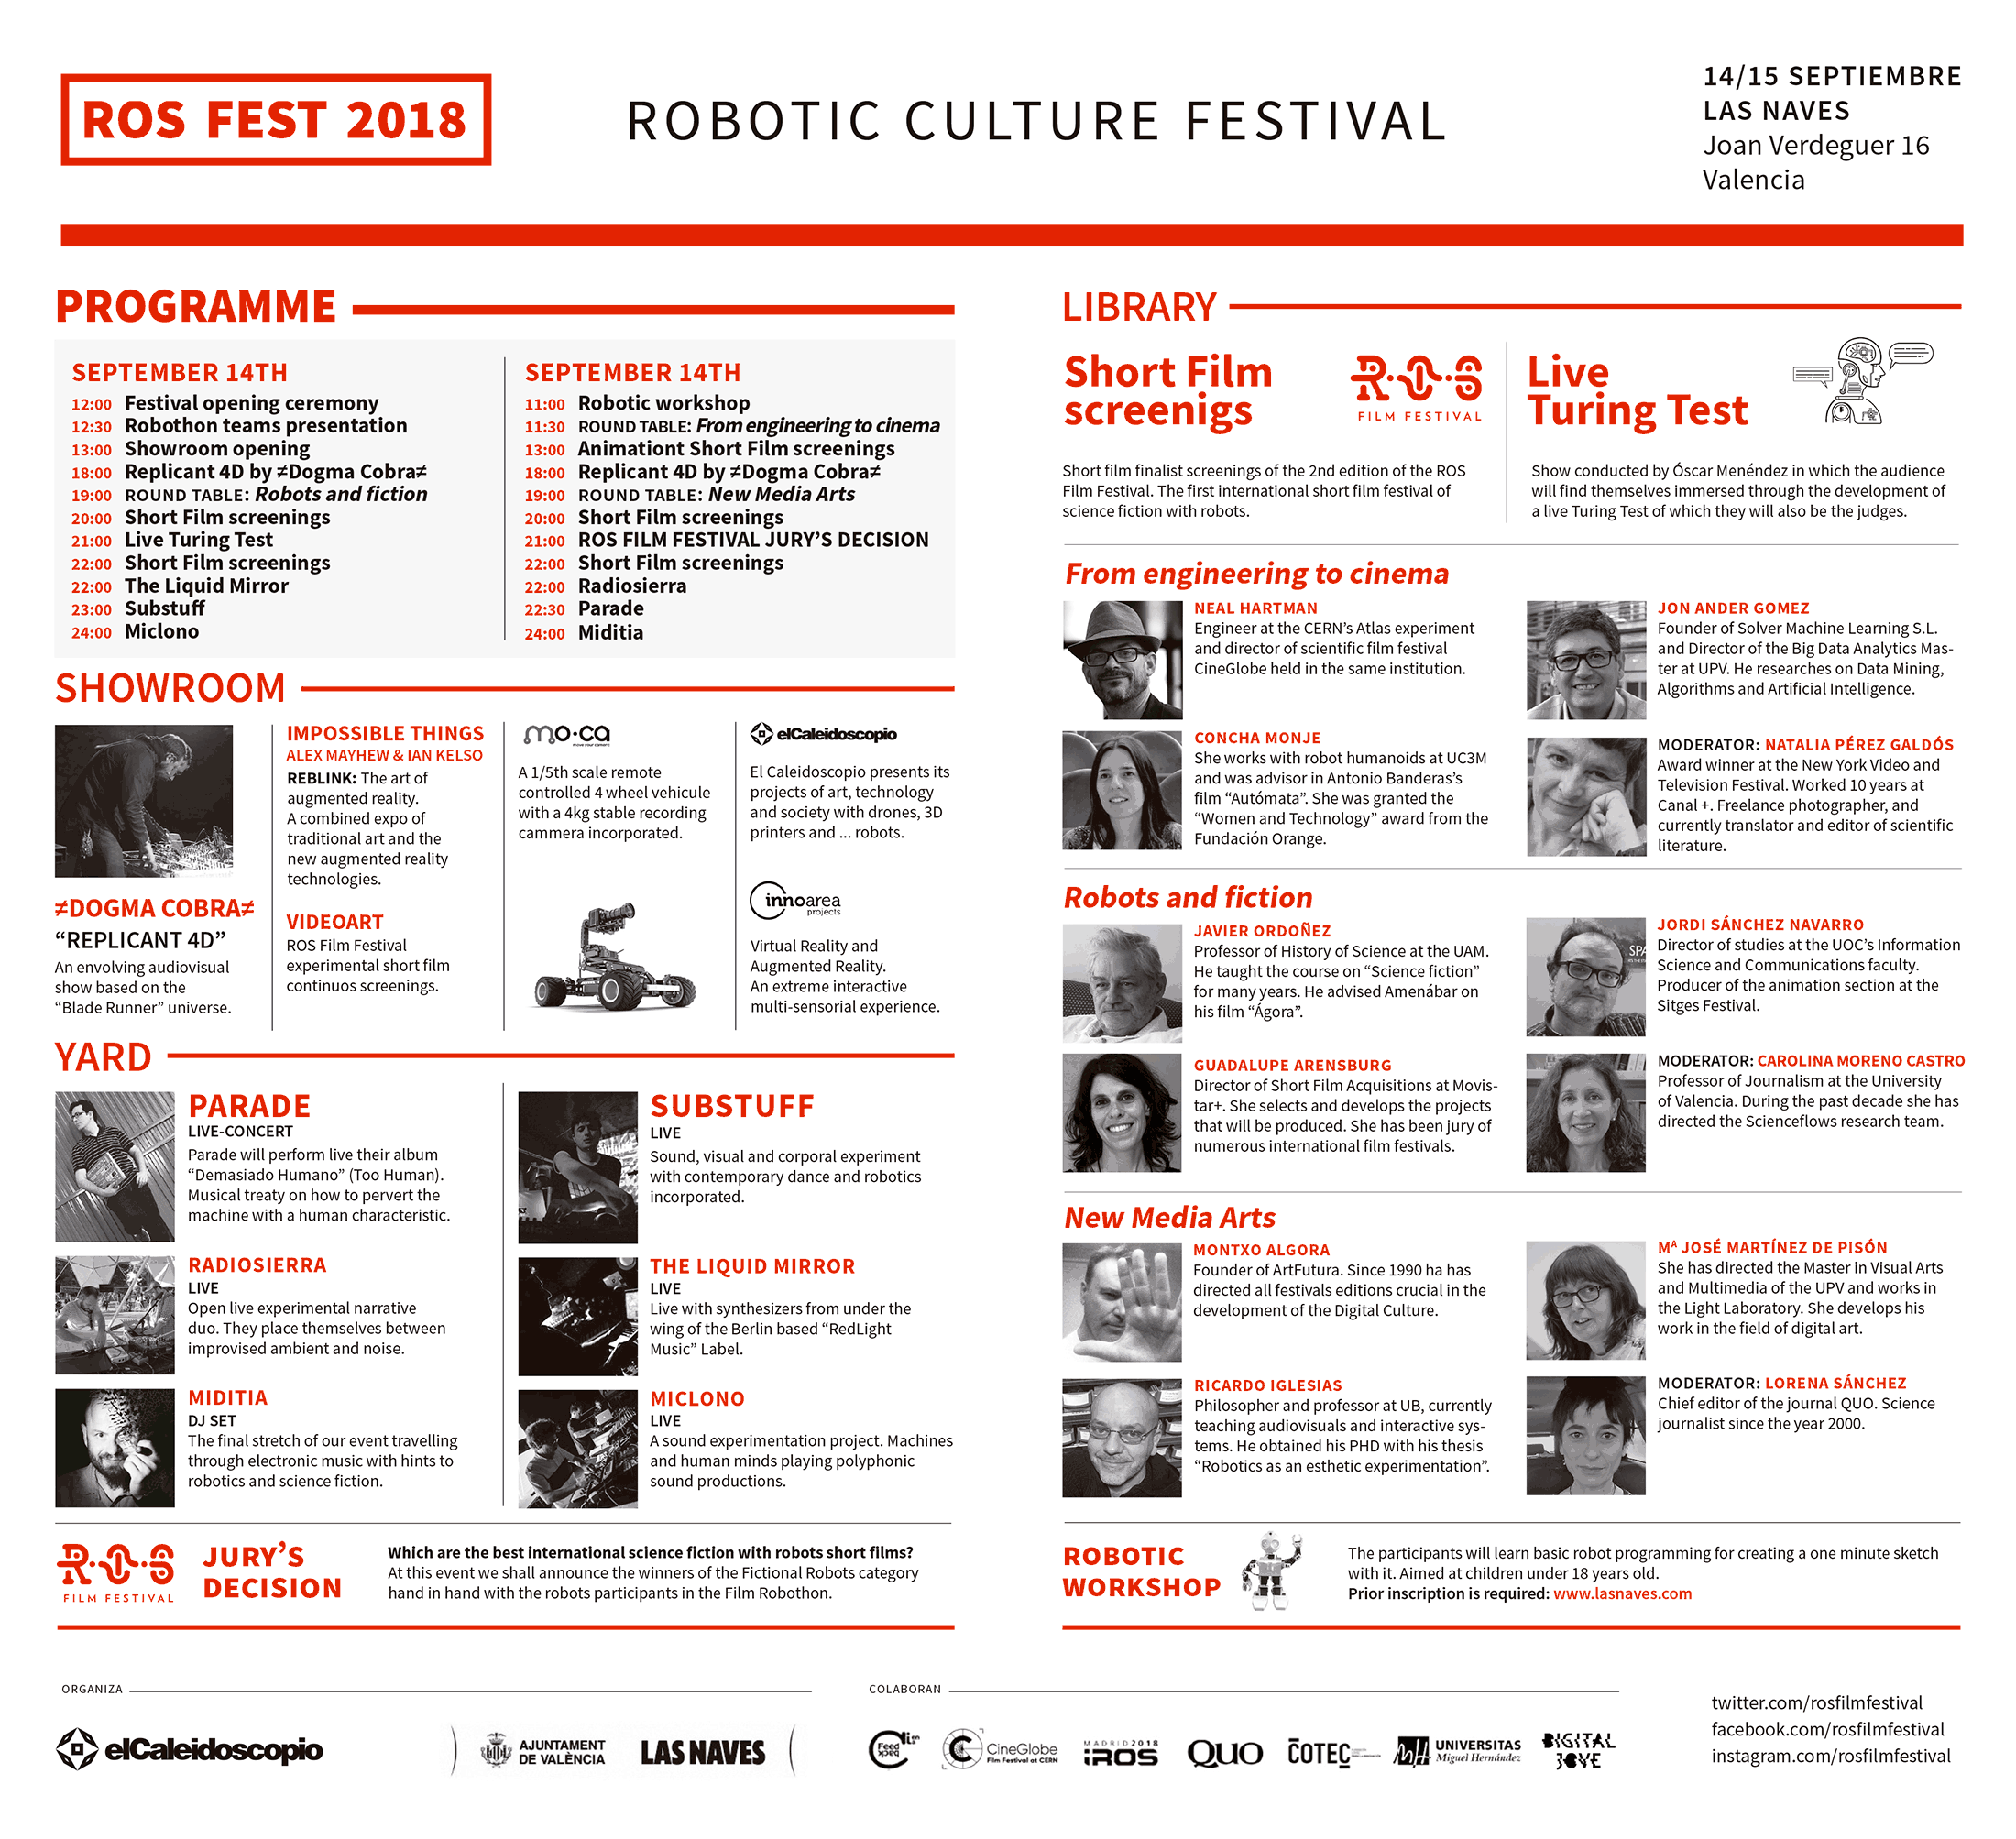 ROS FEST 2018, Robotic Culture Festival